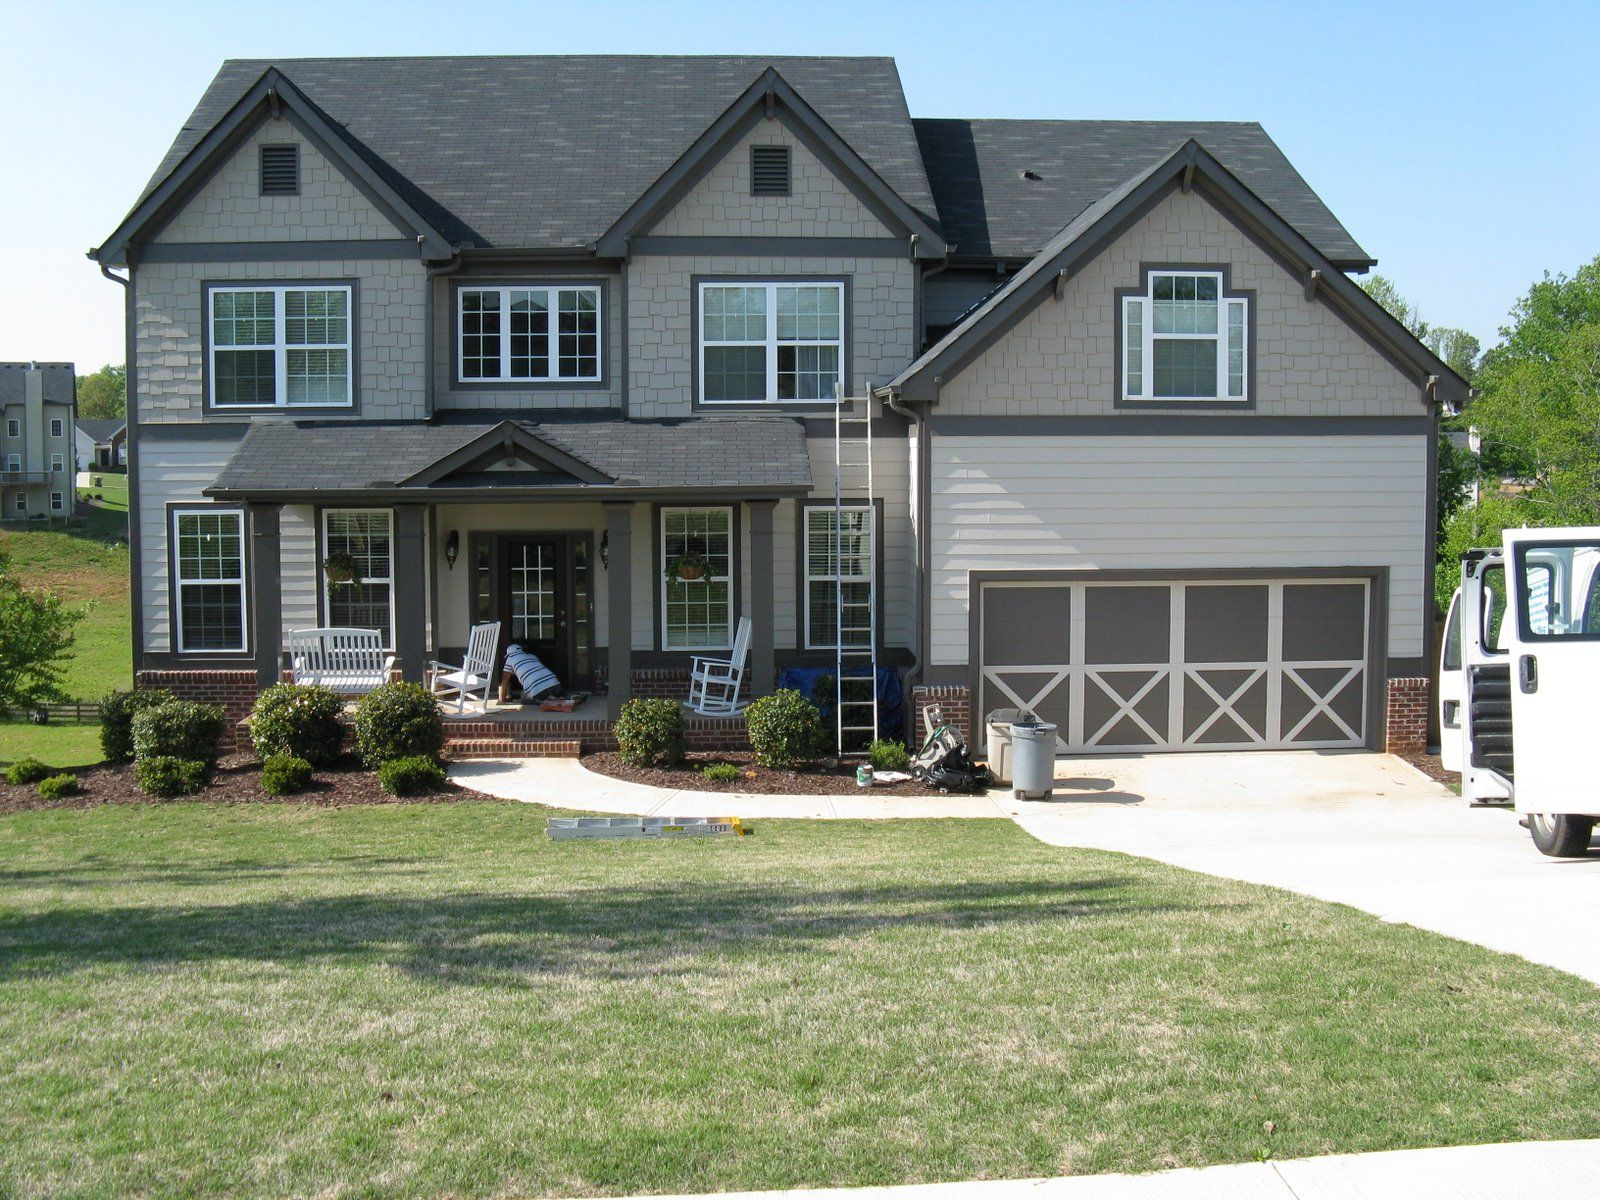 Cool Modern Exterior Paint Colors For Houses Paint Colors Grey And A Largest Home Design Picture Inspirations Pitcheantrous